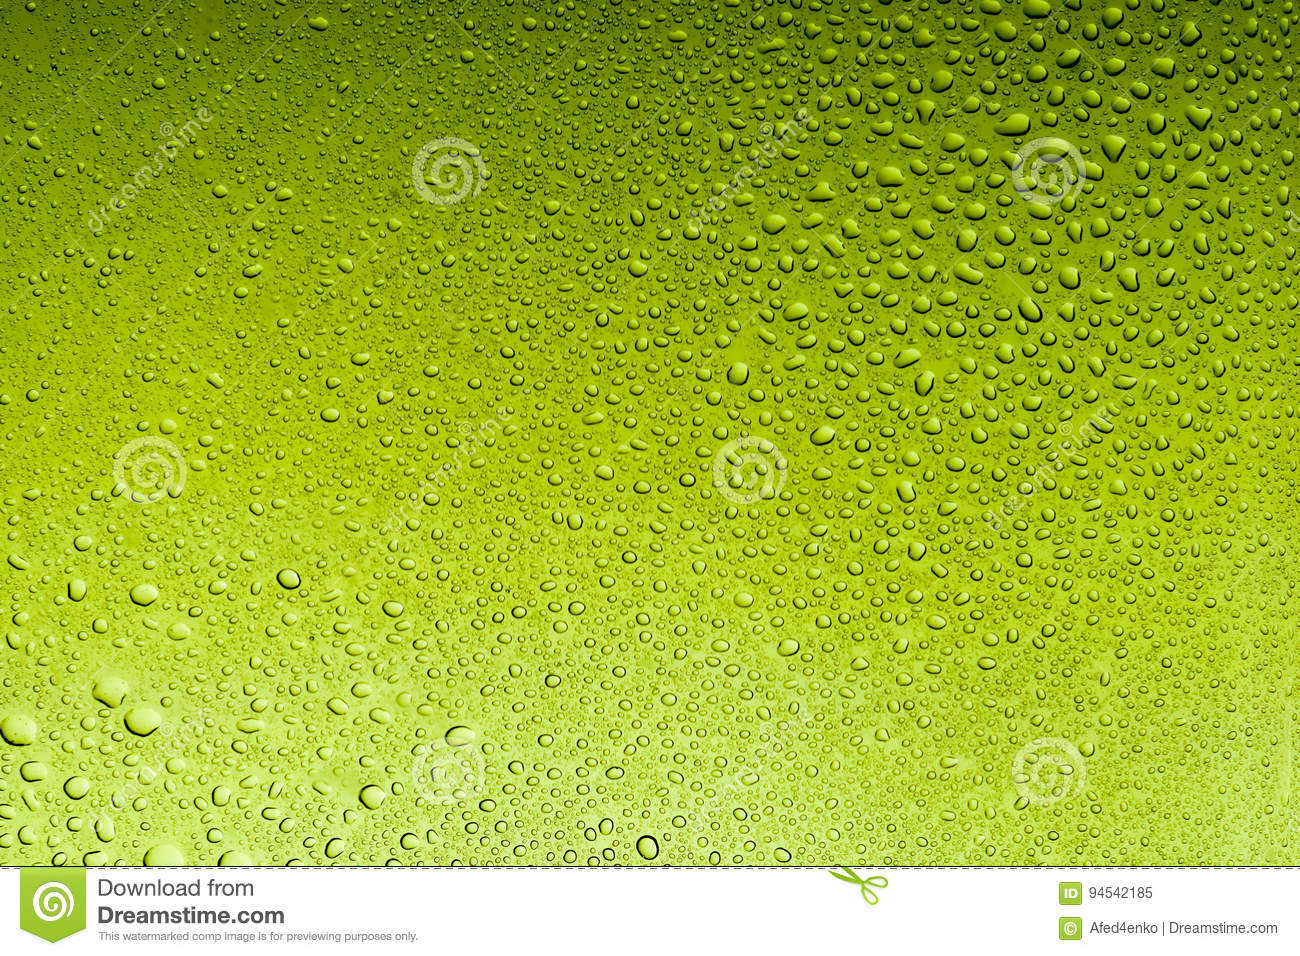 Olive drab water drops abstract background